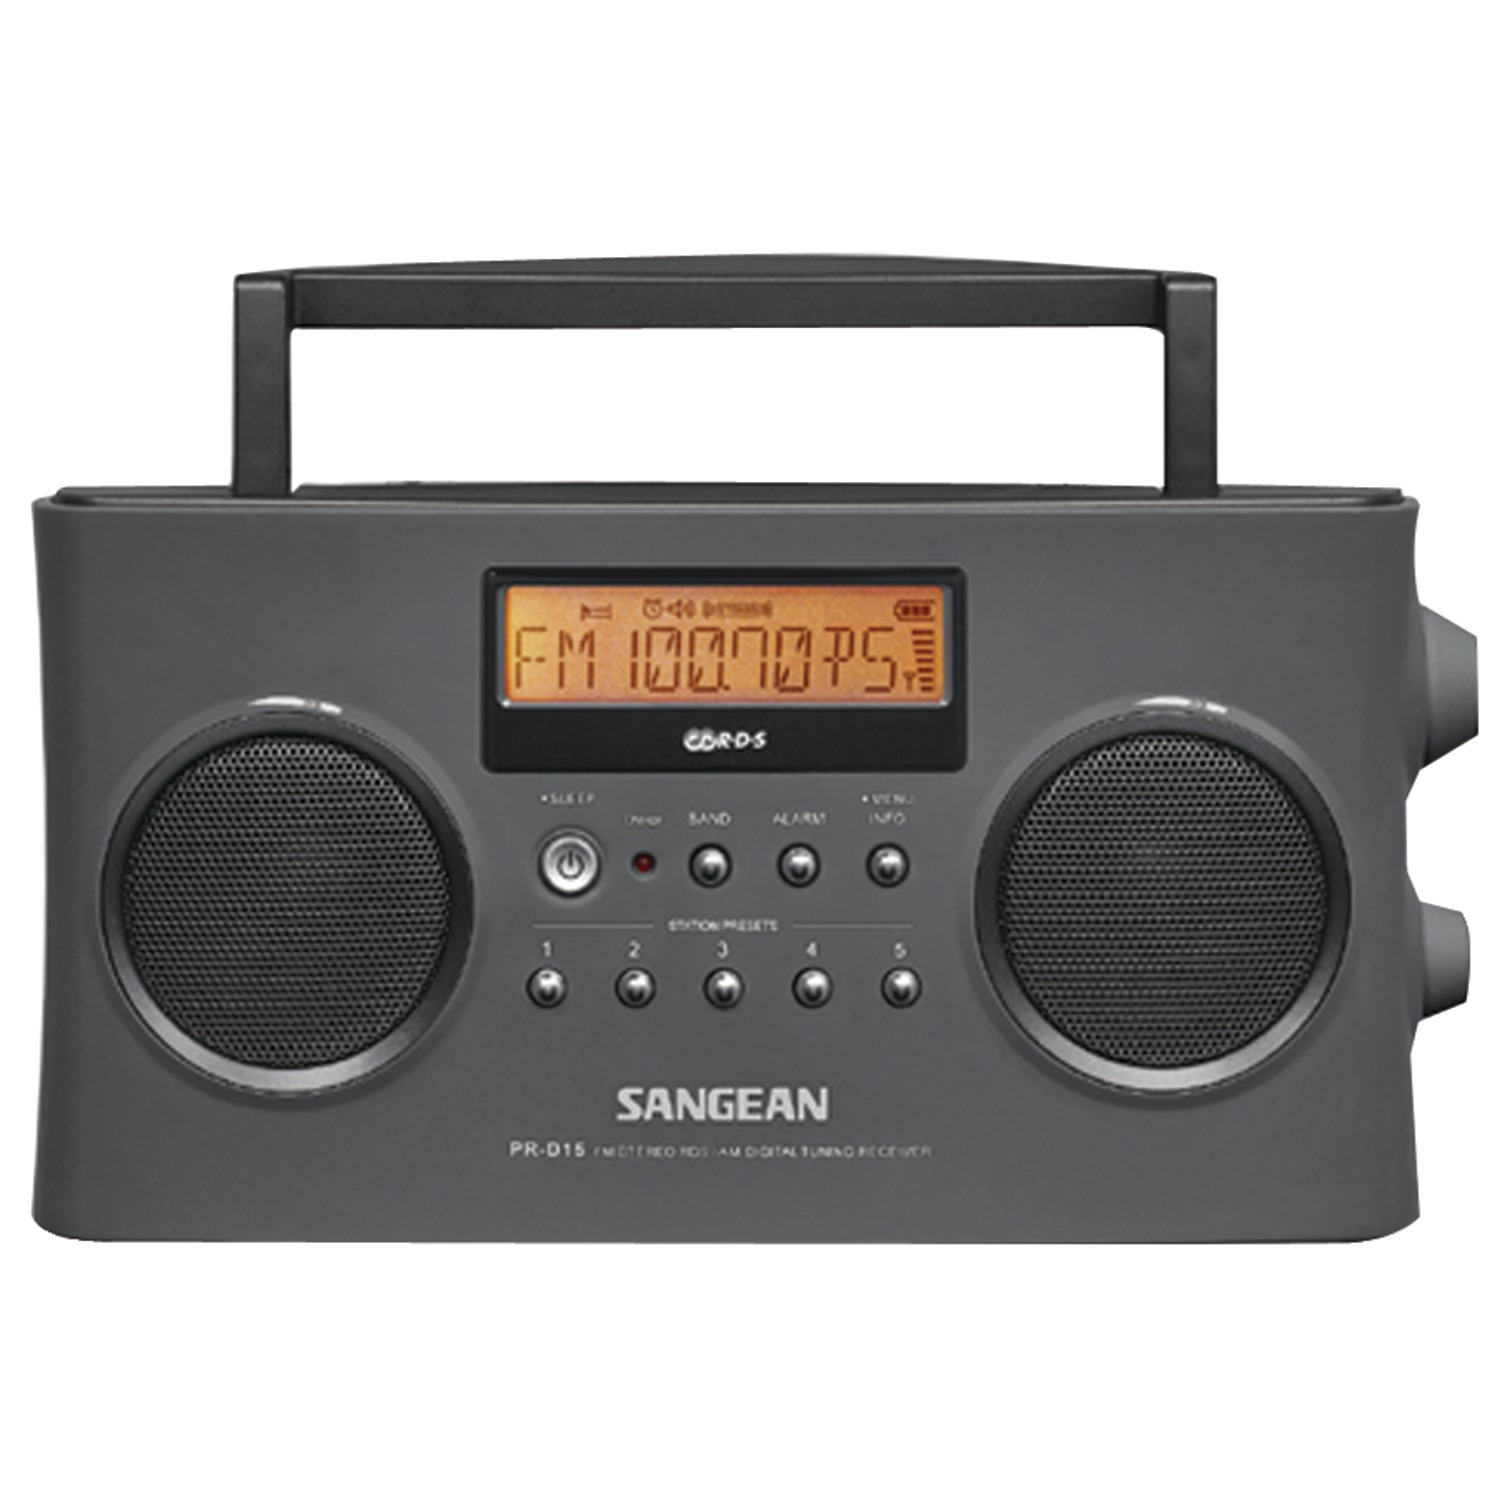 Sangean PR-D15 Digital Portable Stereo RDS Receiver